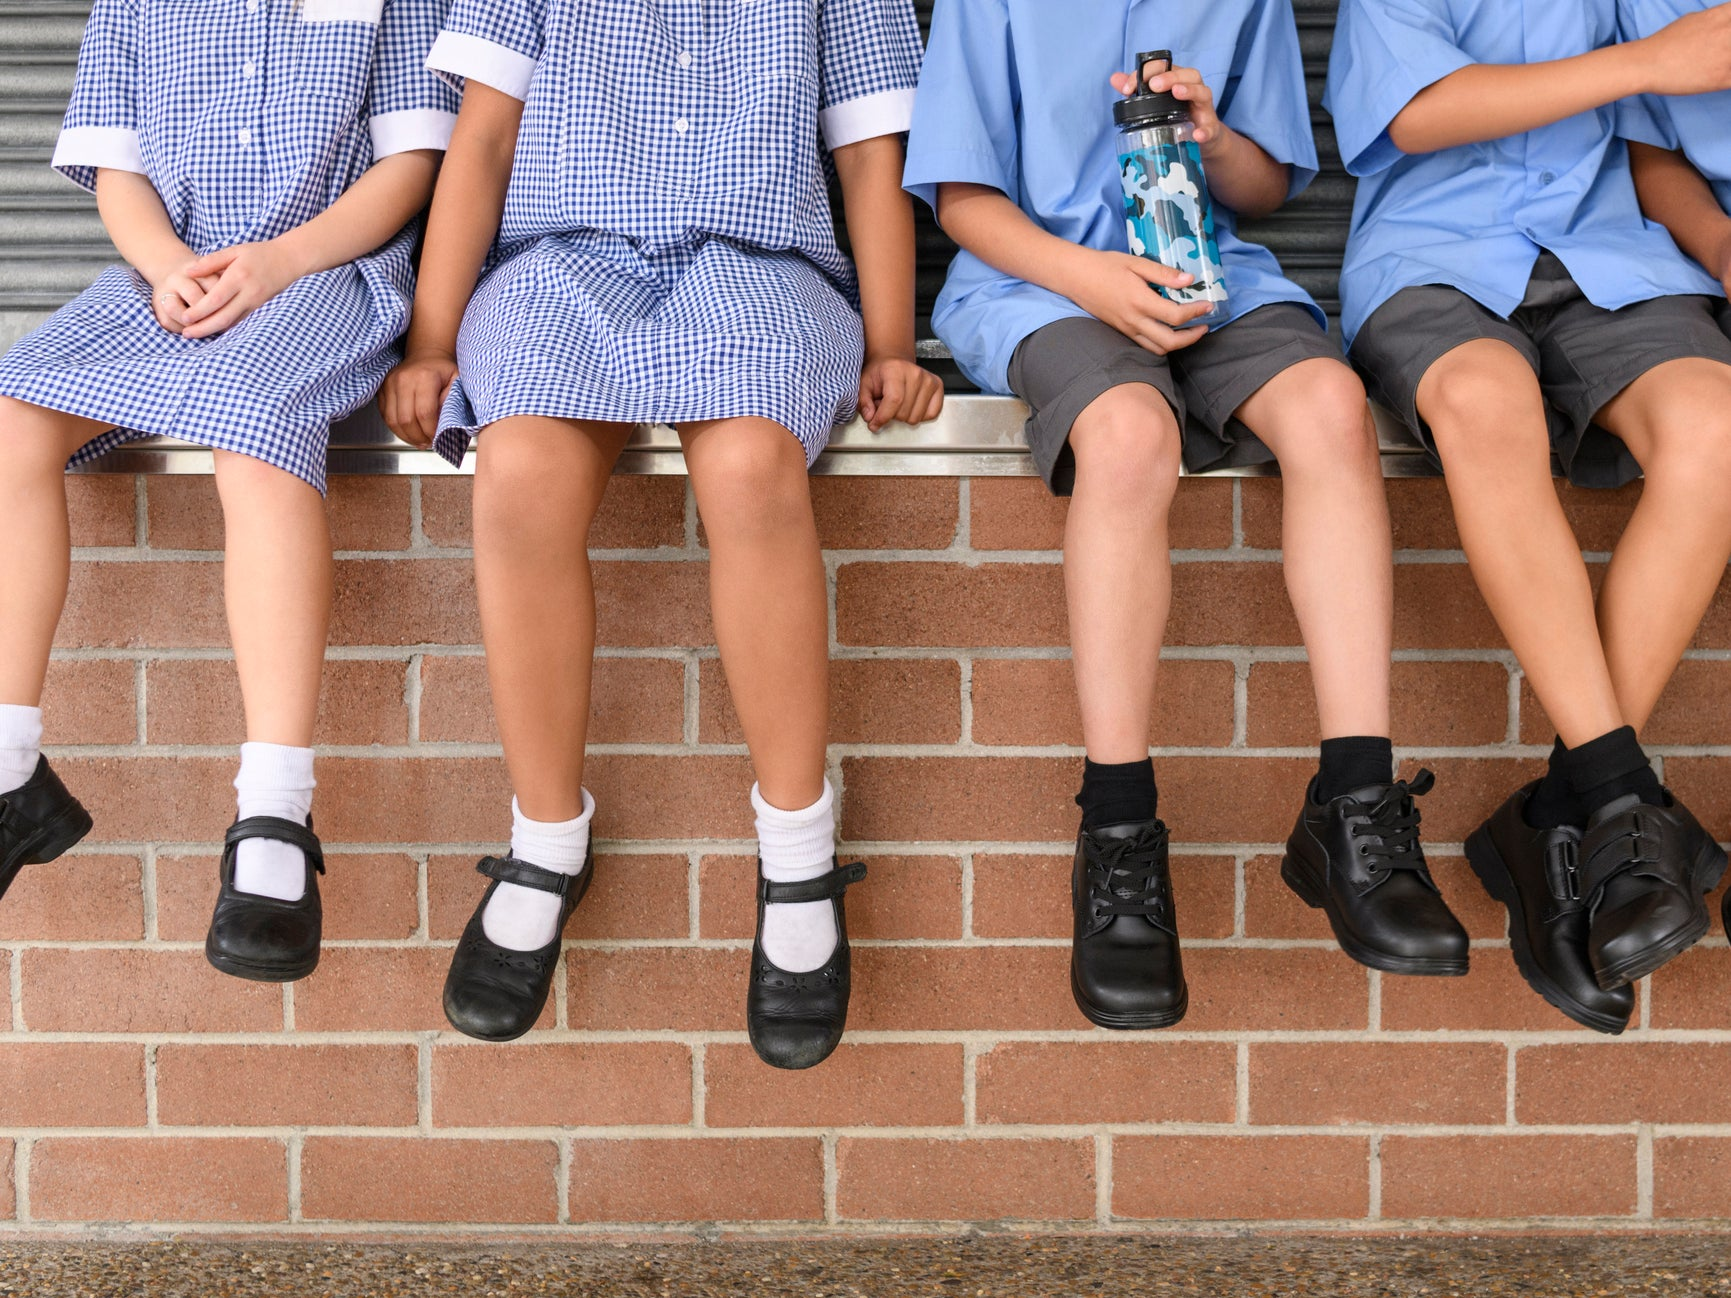 e322b27583 School Uniform - latest news, breaking stories and comment - The ...